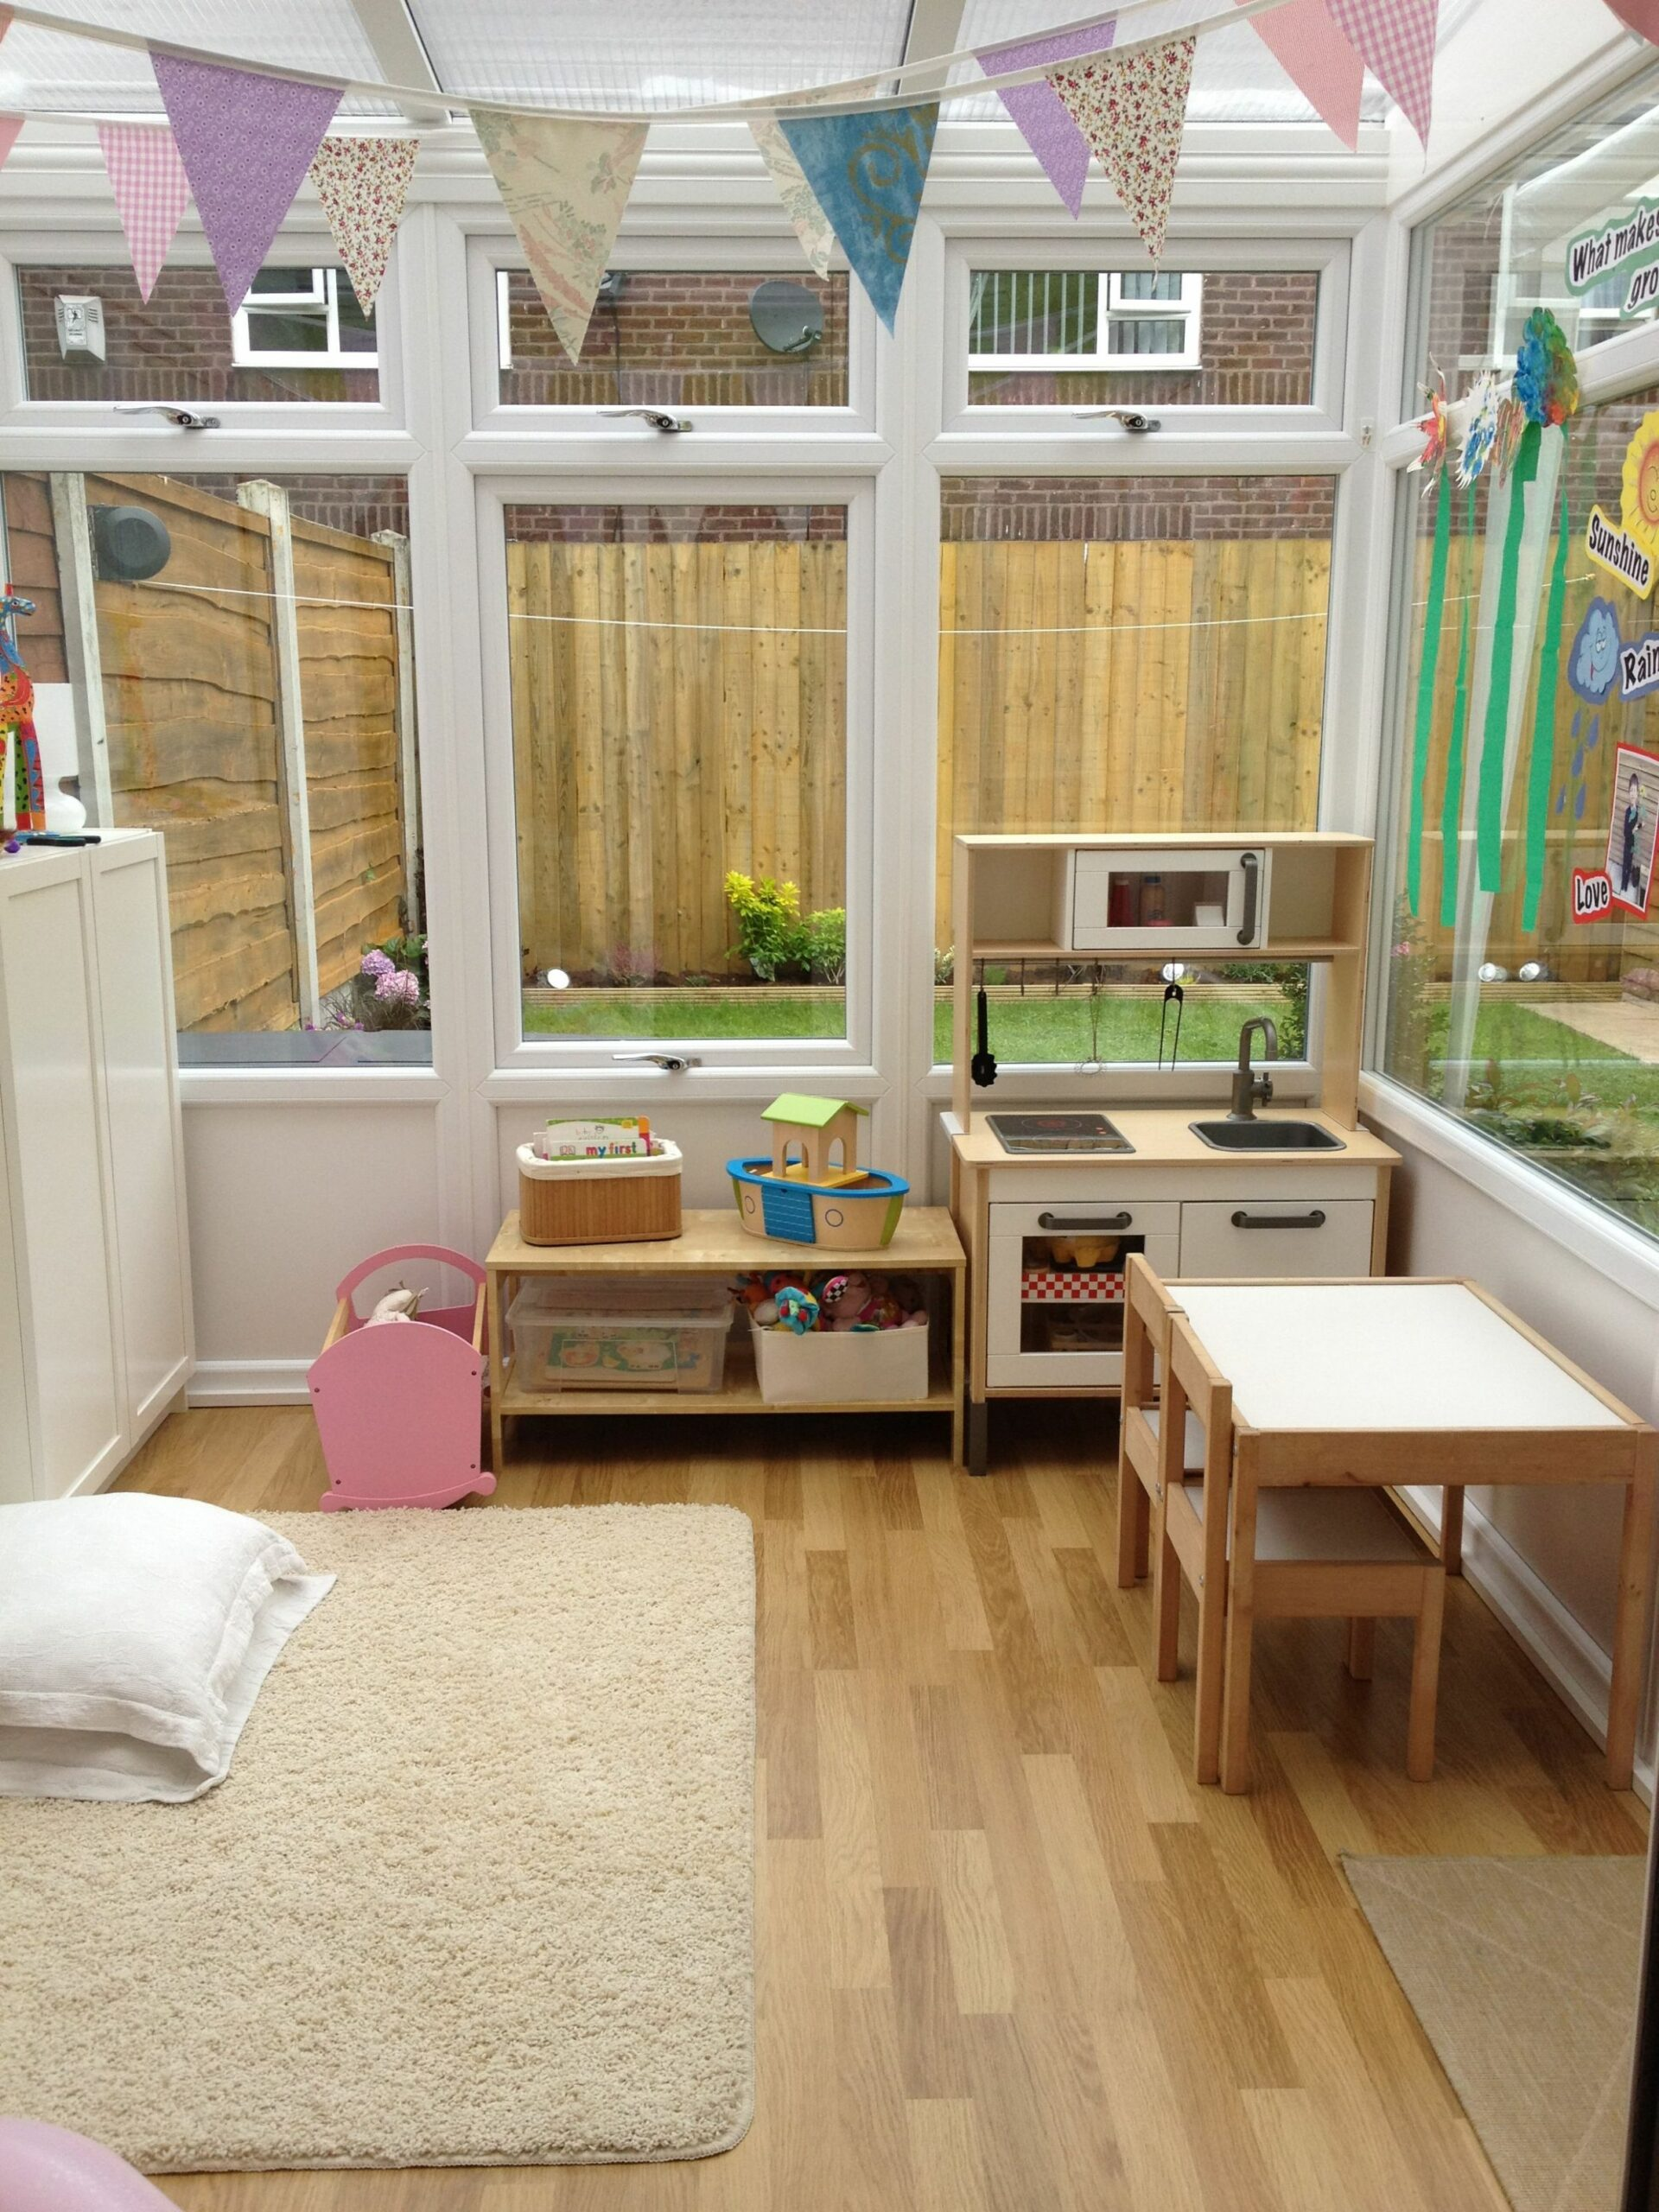 Conservatory converted into a playroom | Small playroom, Small sunroom - small sunroom ideas uk